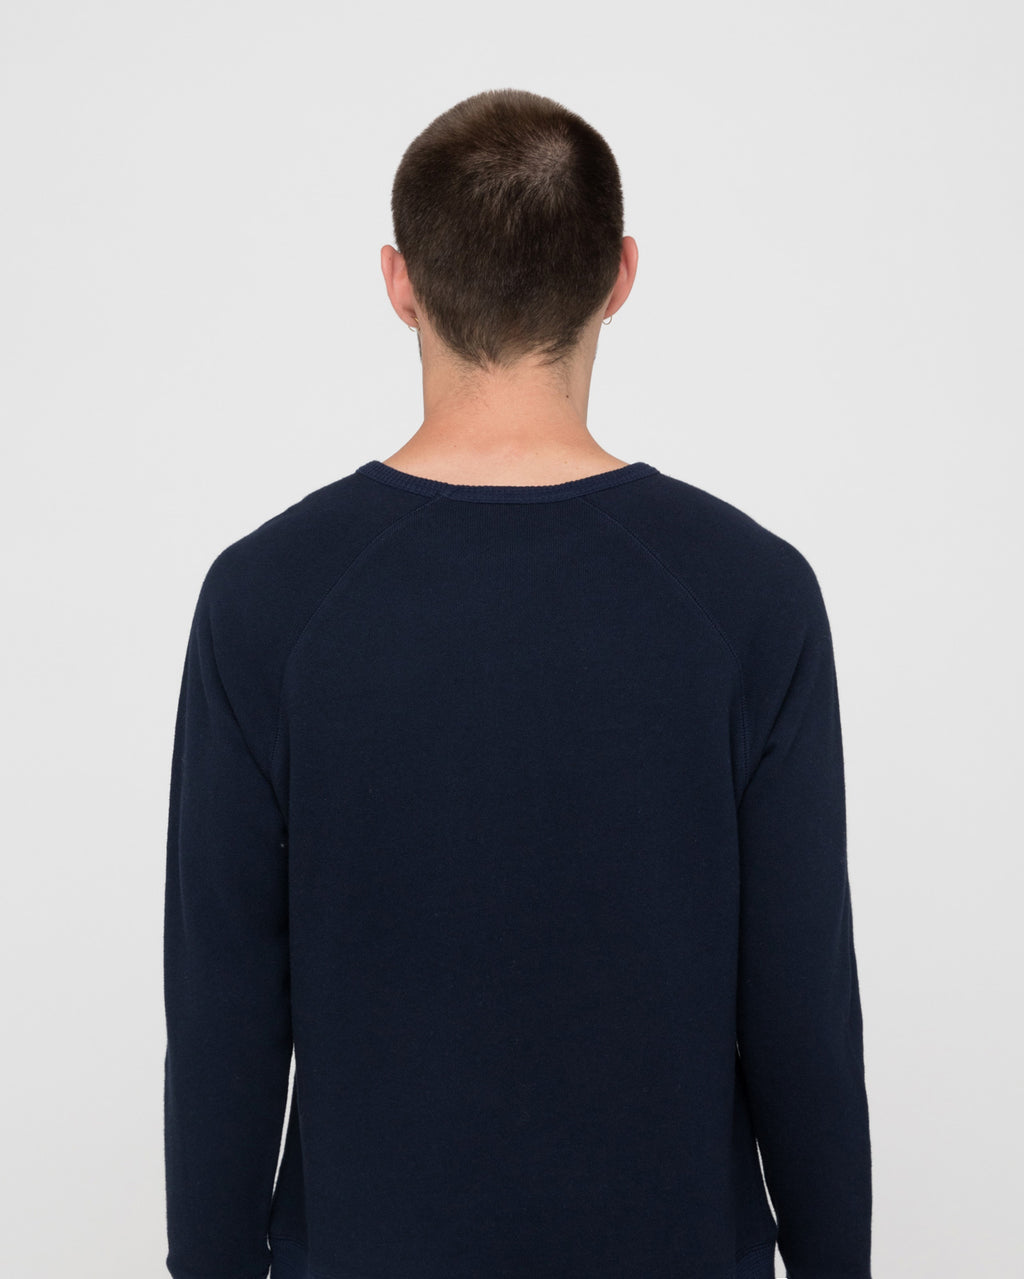 The Silio Sweatshirt in Navy